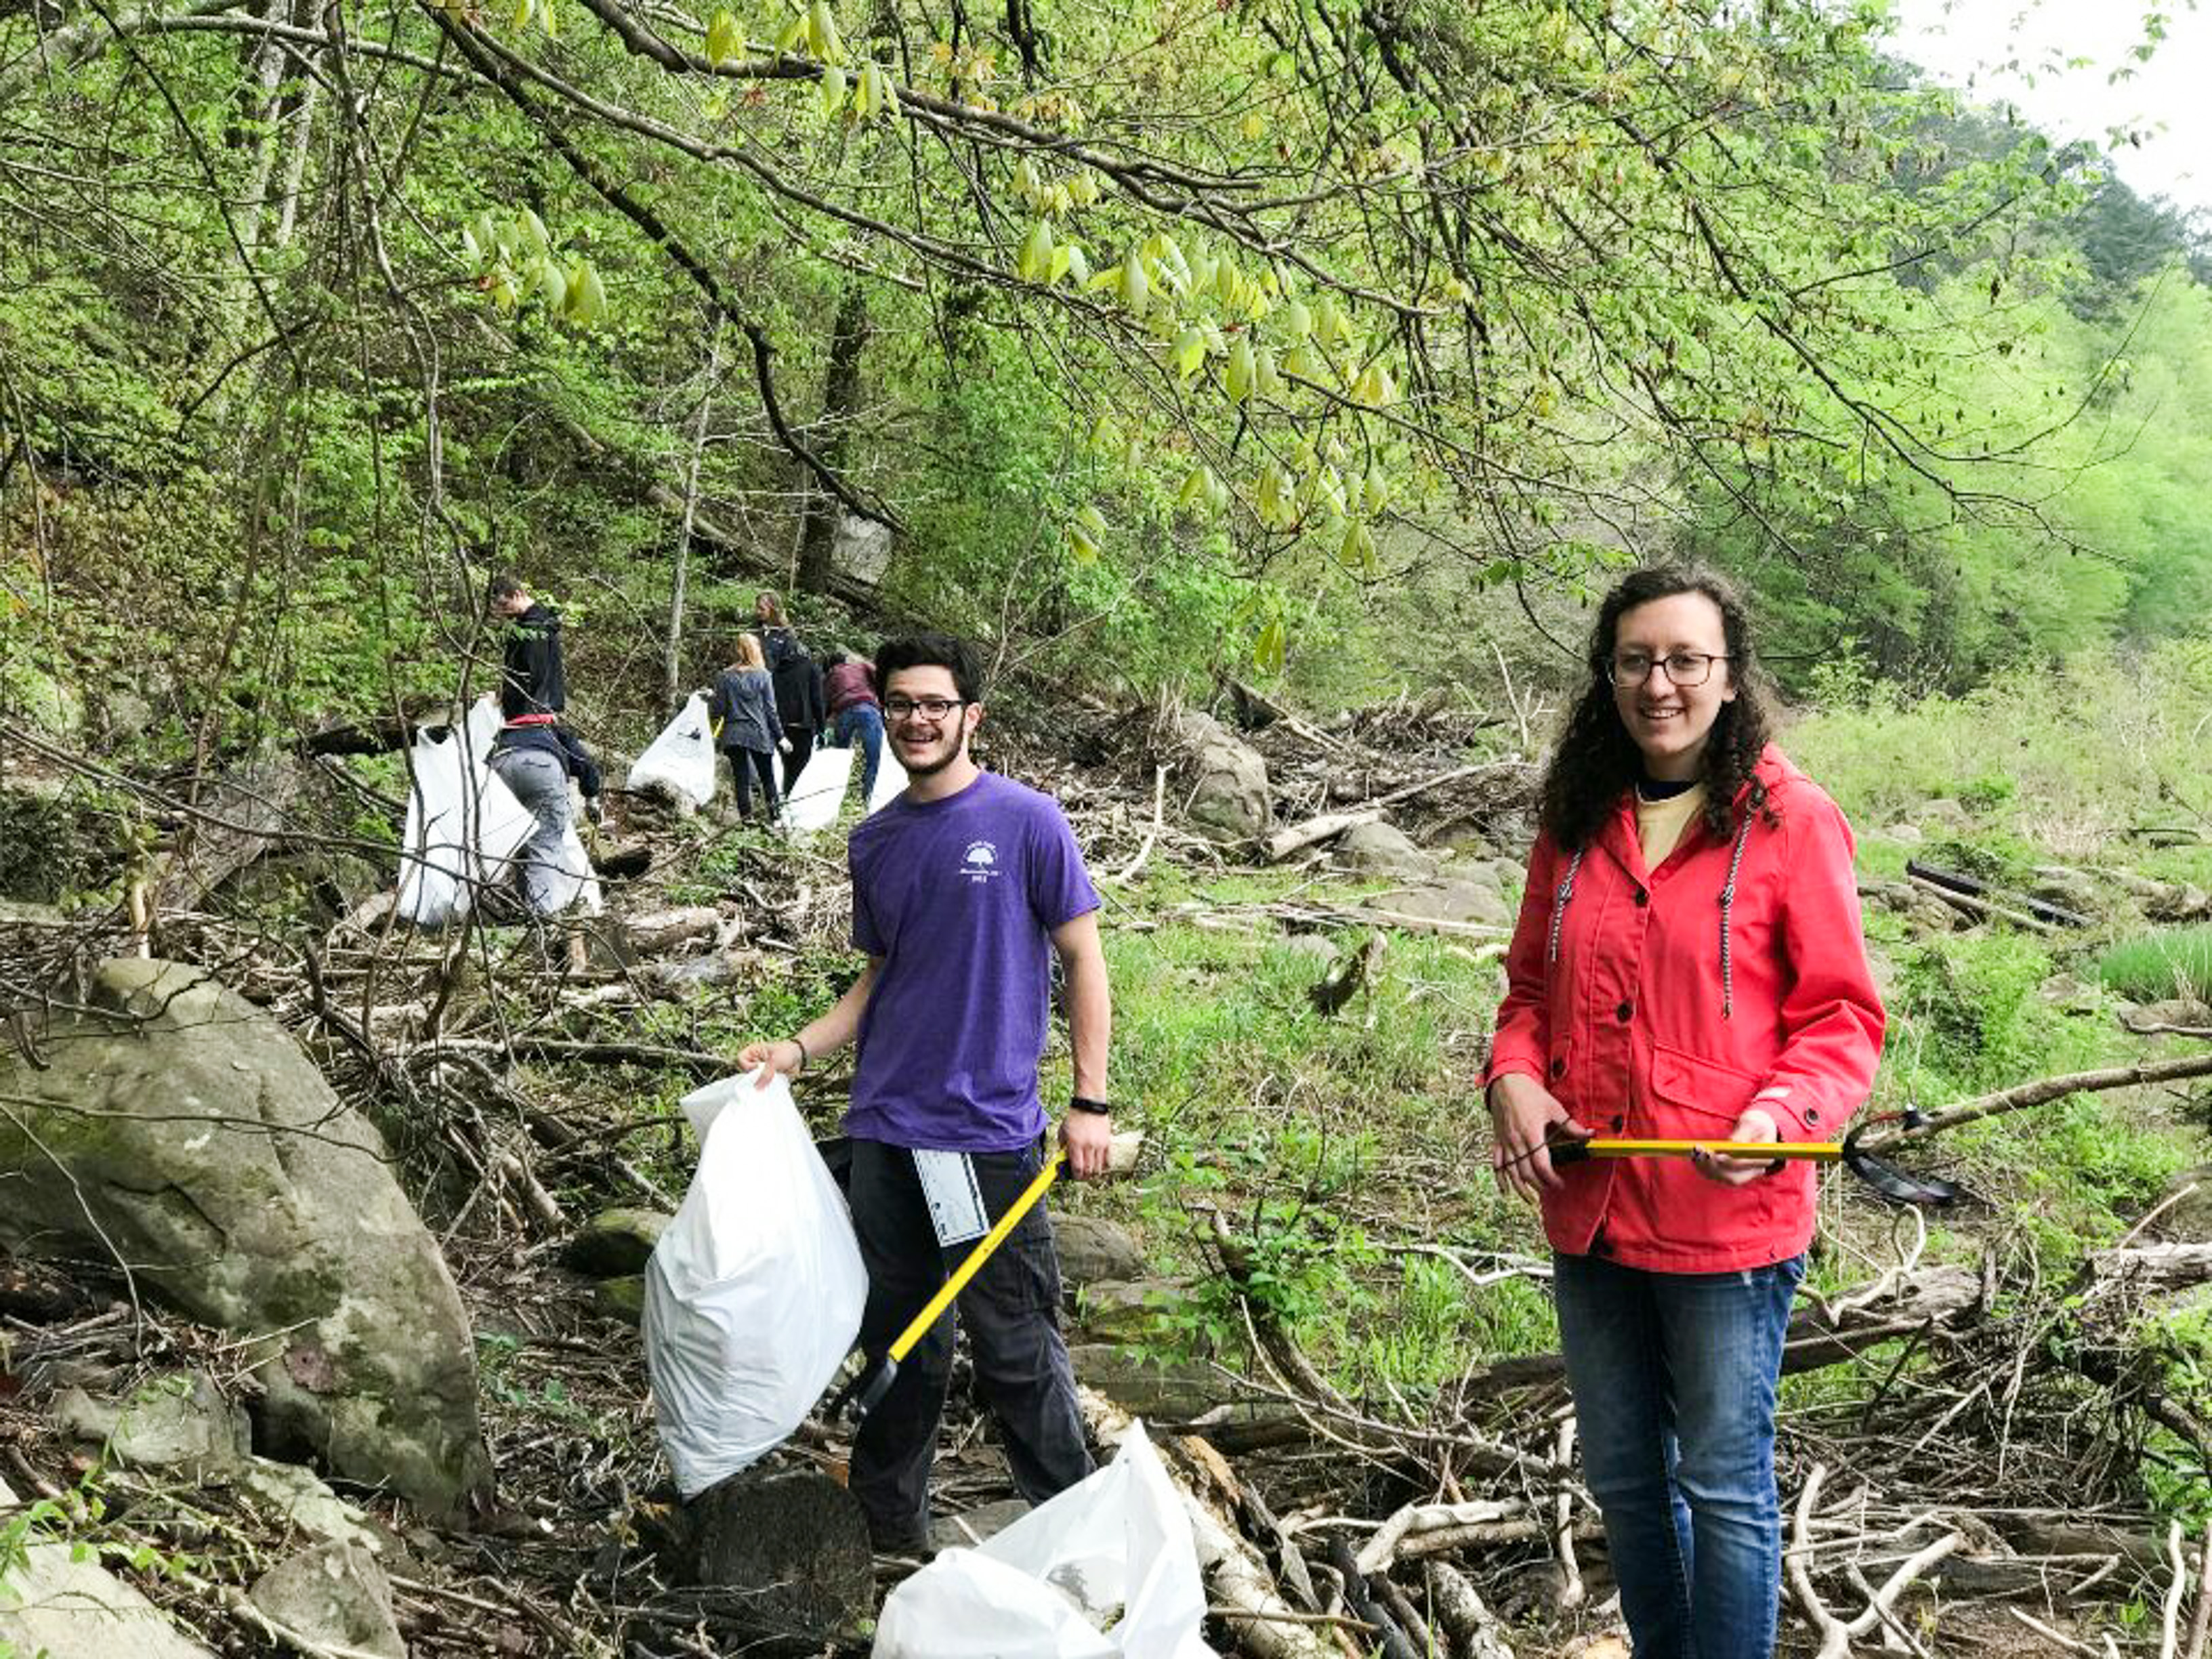 Environmental club members cleaning up the outdoors